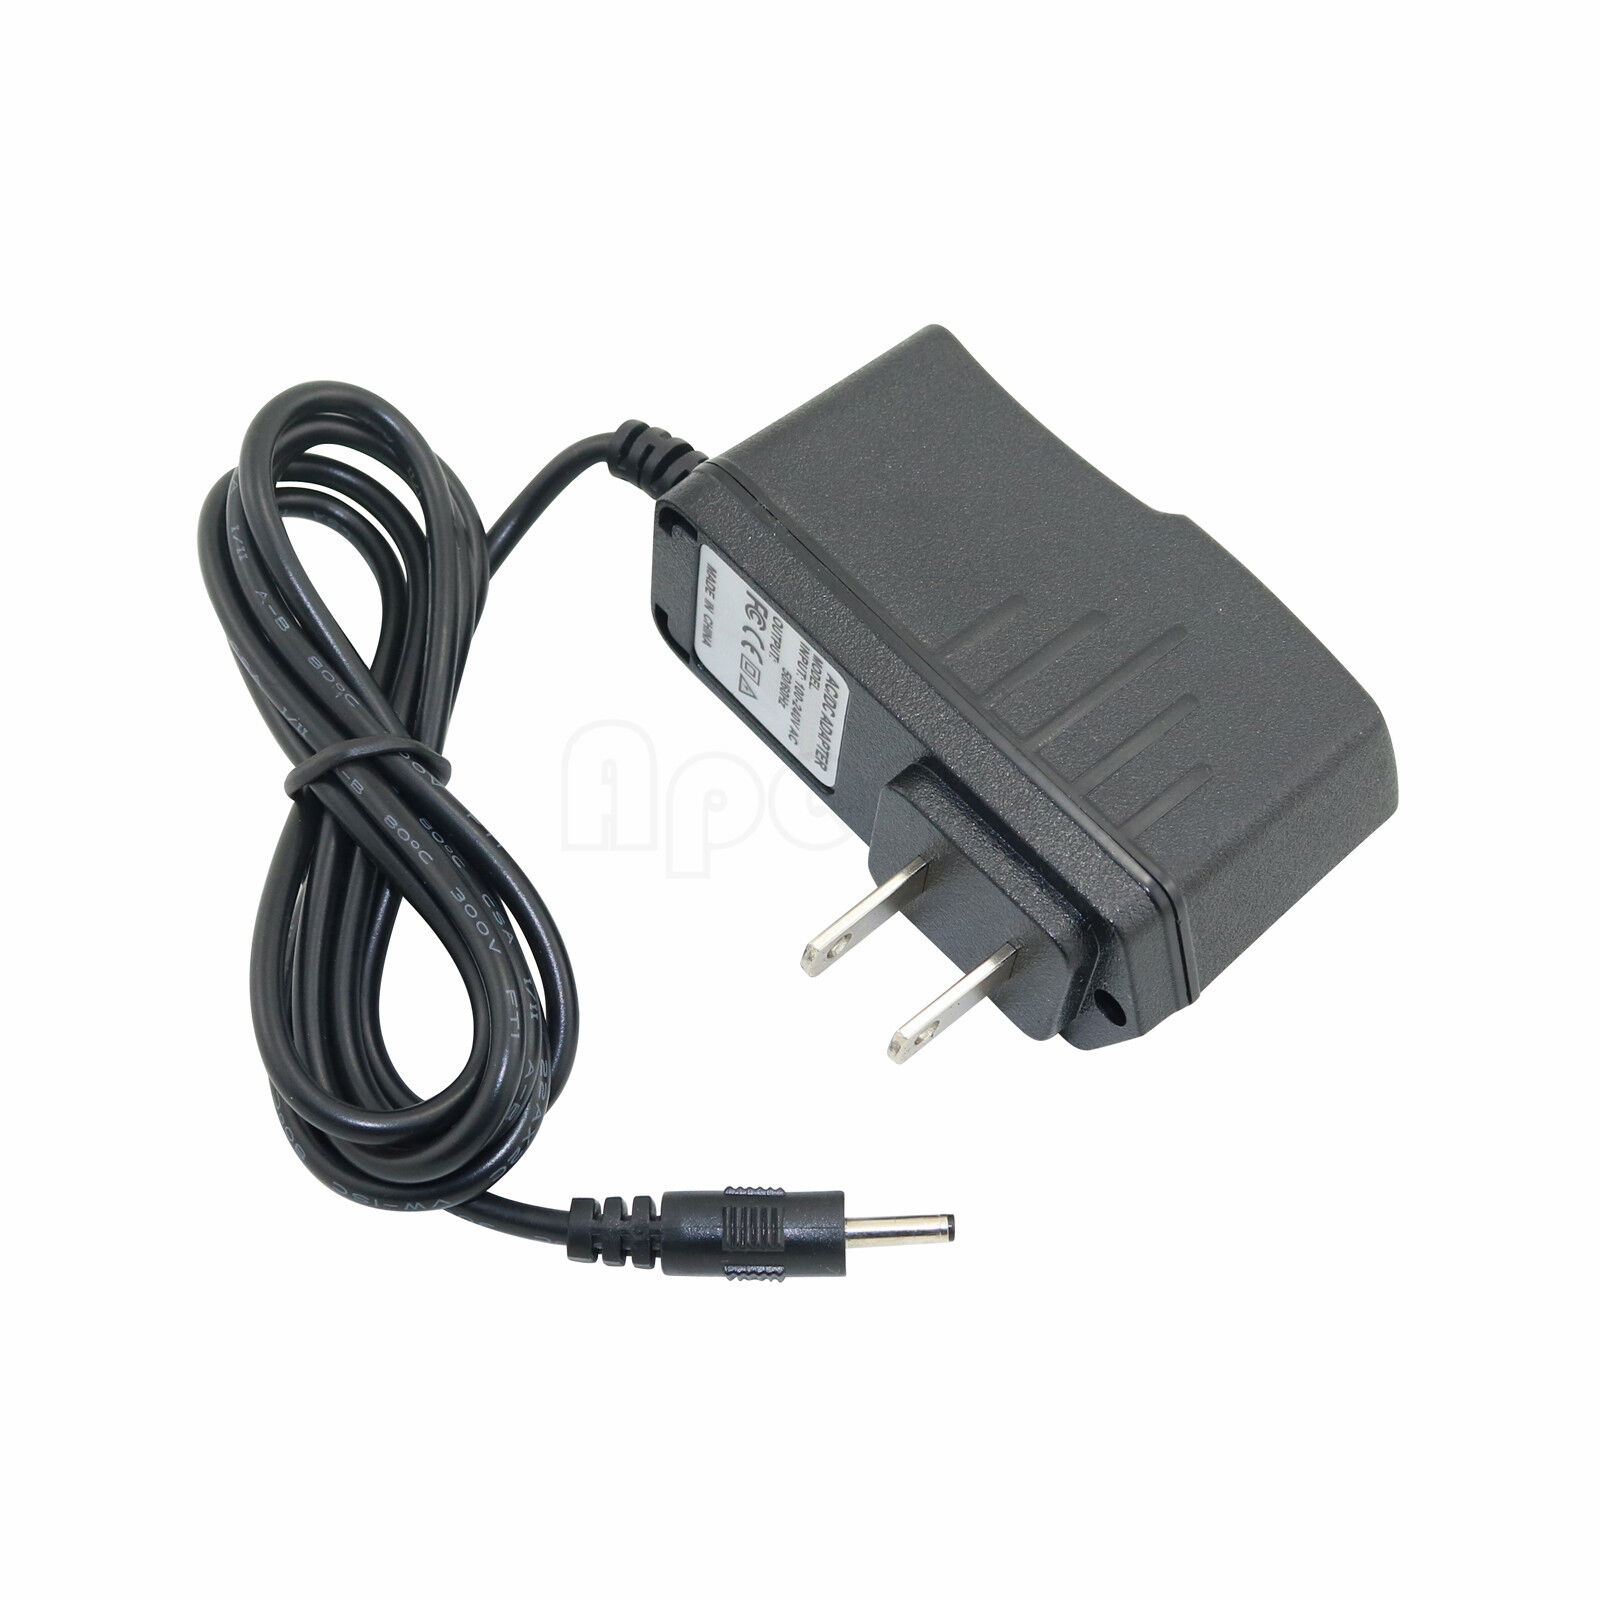 "AC//DC Power Adapter Wall Charger Cord For RCA Pro 10/"" Edition RCT6103W46 Tablet"